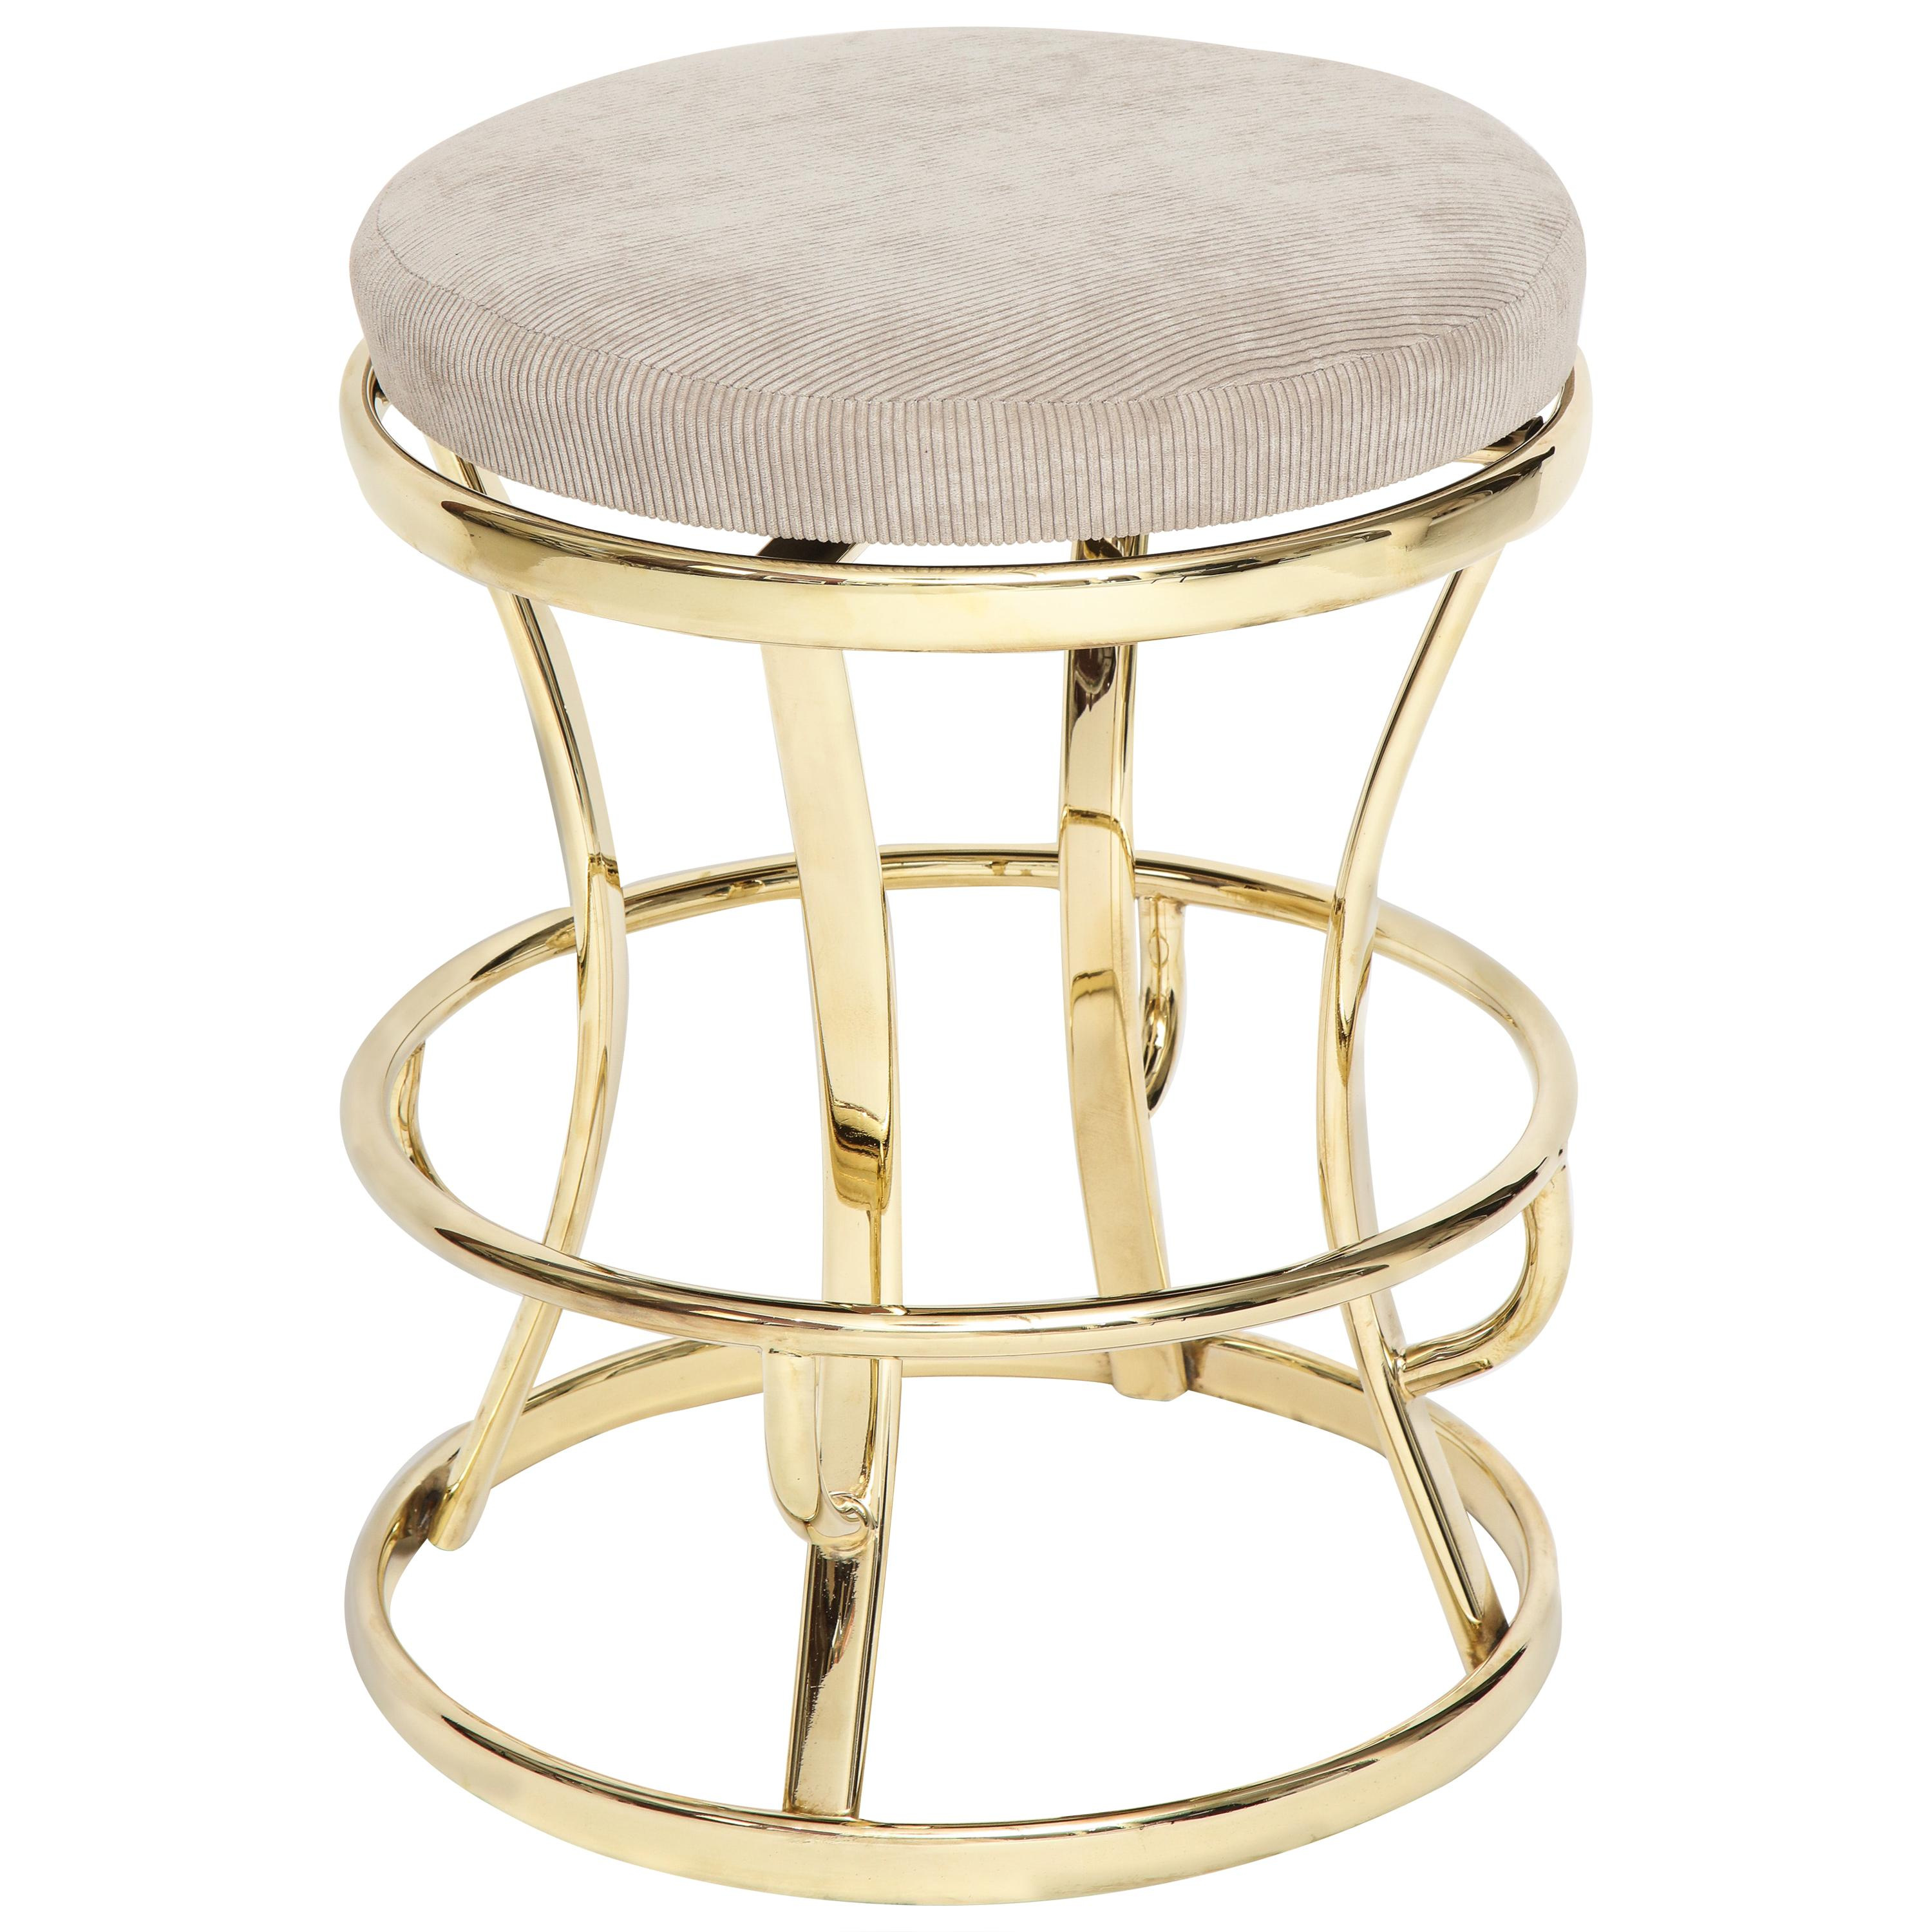 Four Glamorous Brass and Grey Barstools, Midcentury, France, 1970s